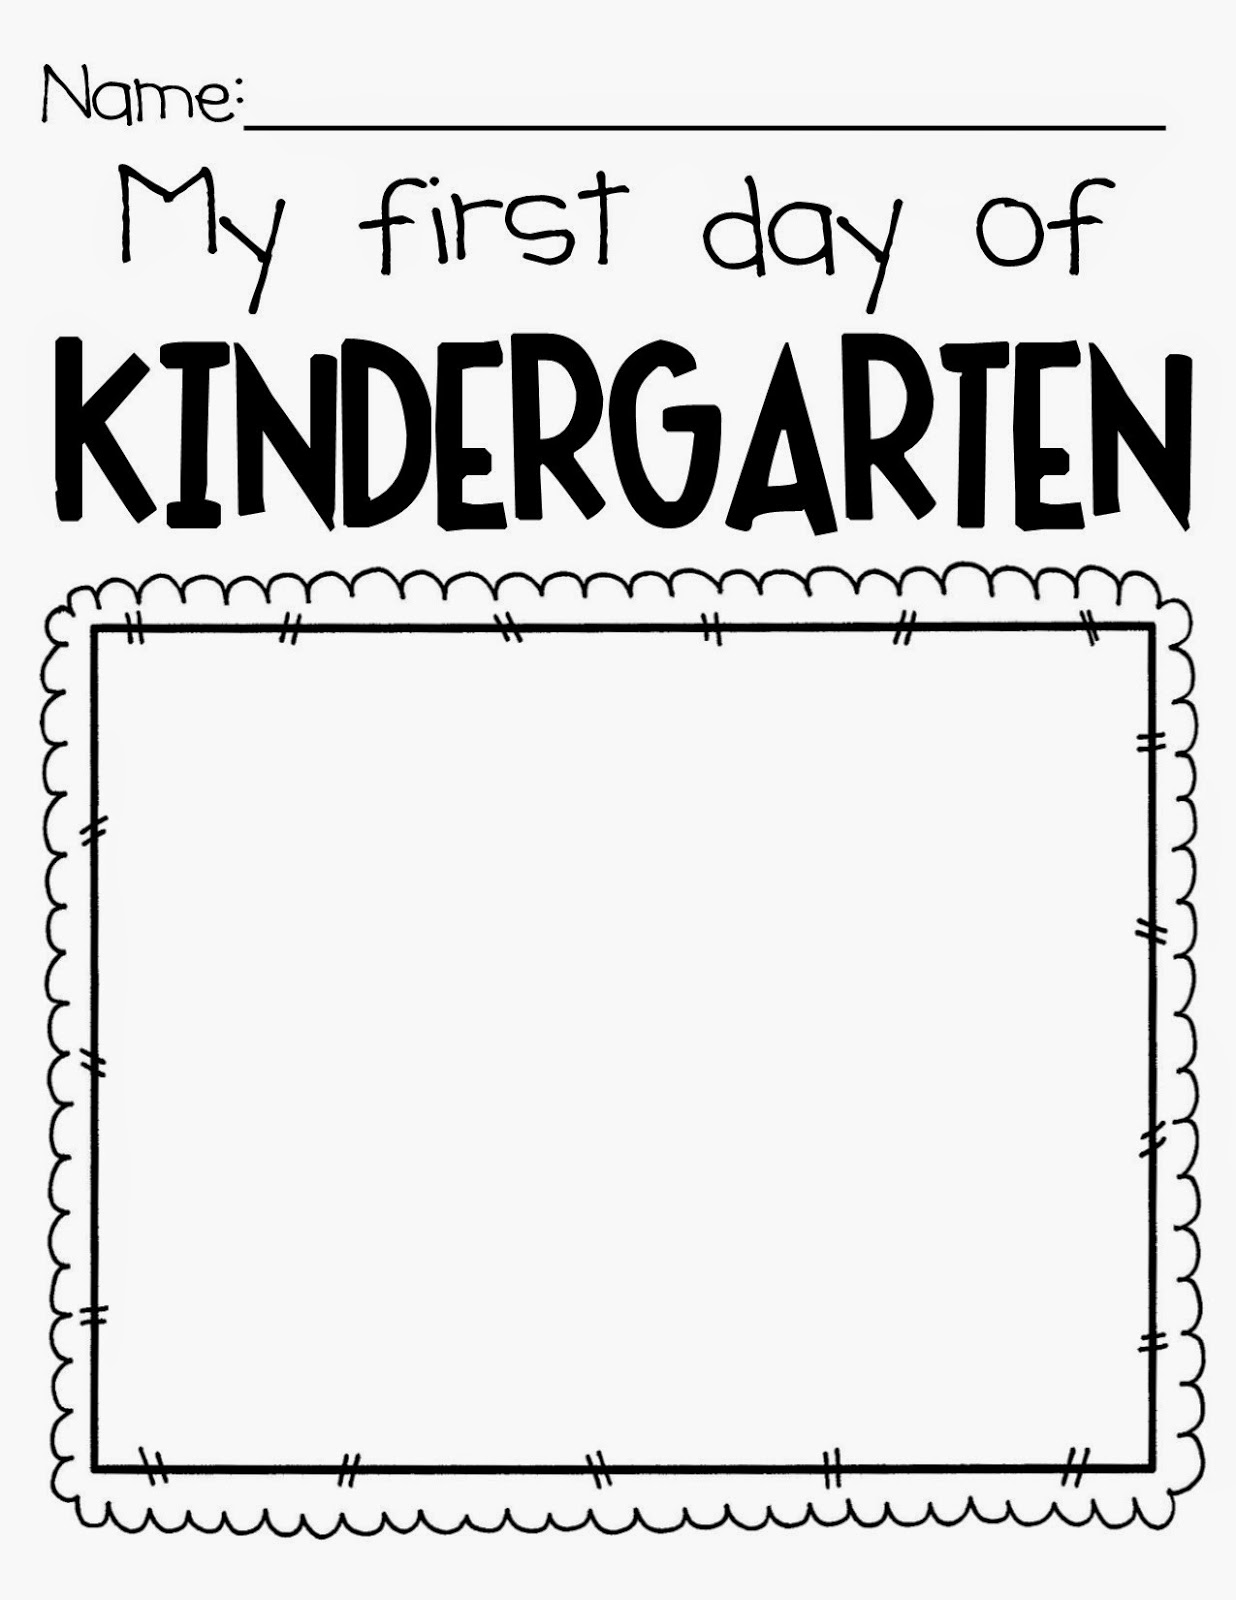 http://www.teacherspayteachers.com/Product/First-Day-of-School-1366975